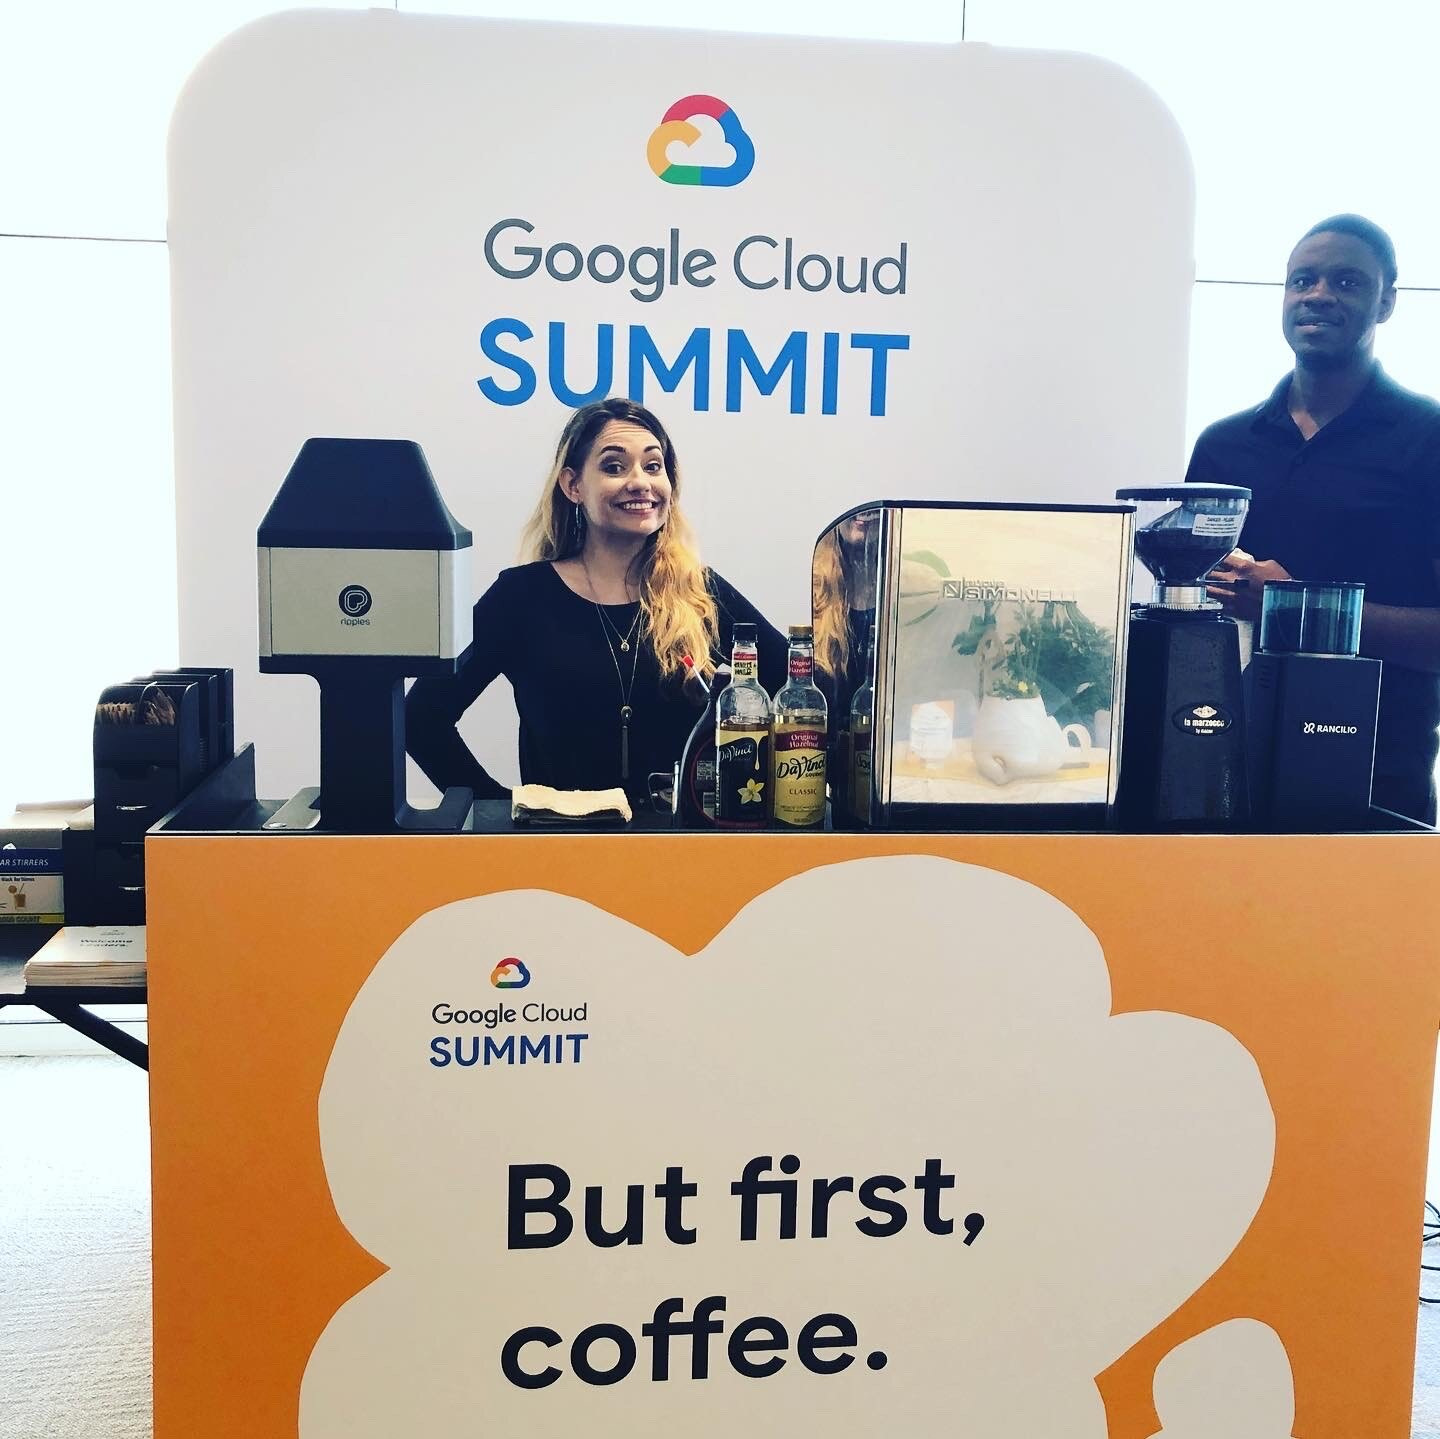 Branded Coffee Carts. Create Your Own Cafe as Your Employees and/or Clients Get Served By Our Talented and Friendly Baristas!